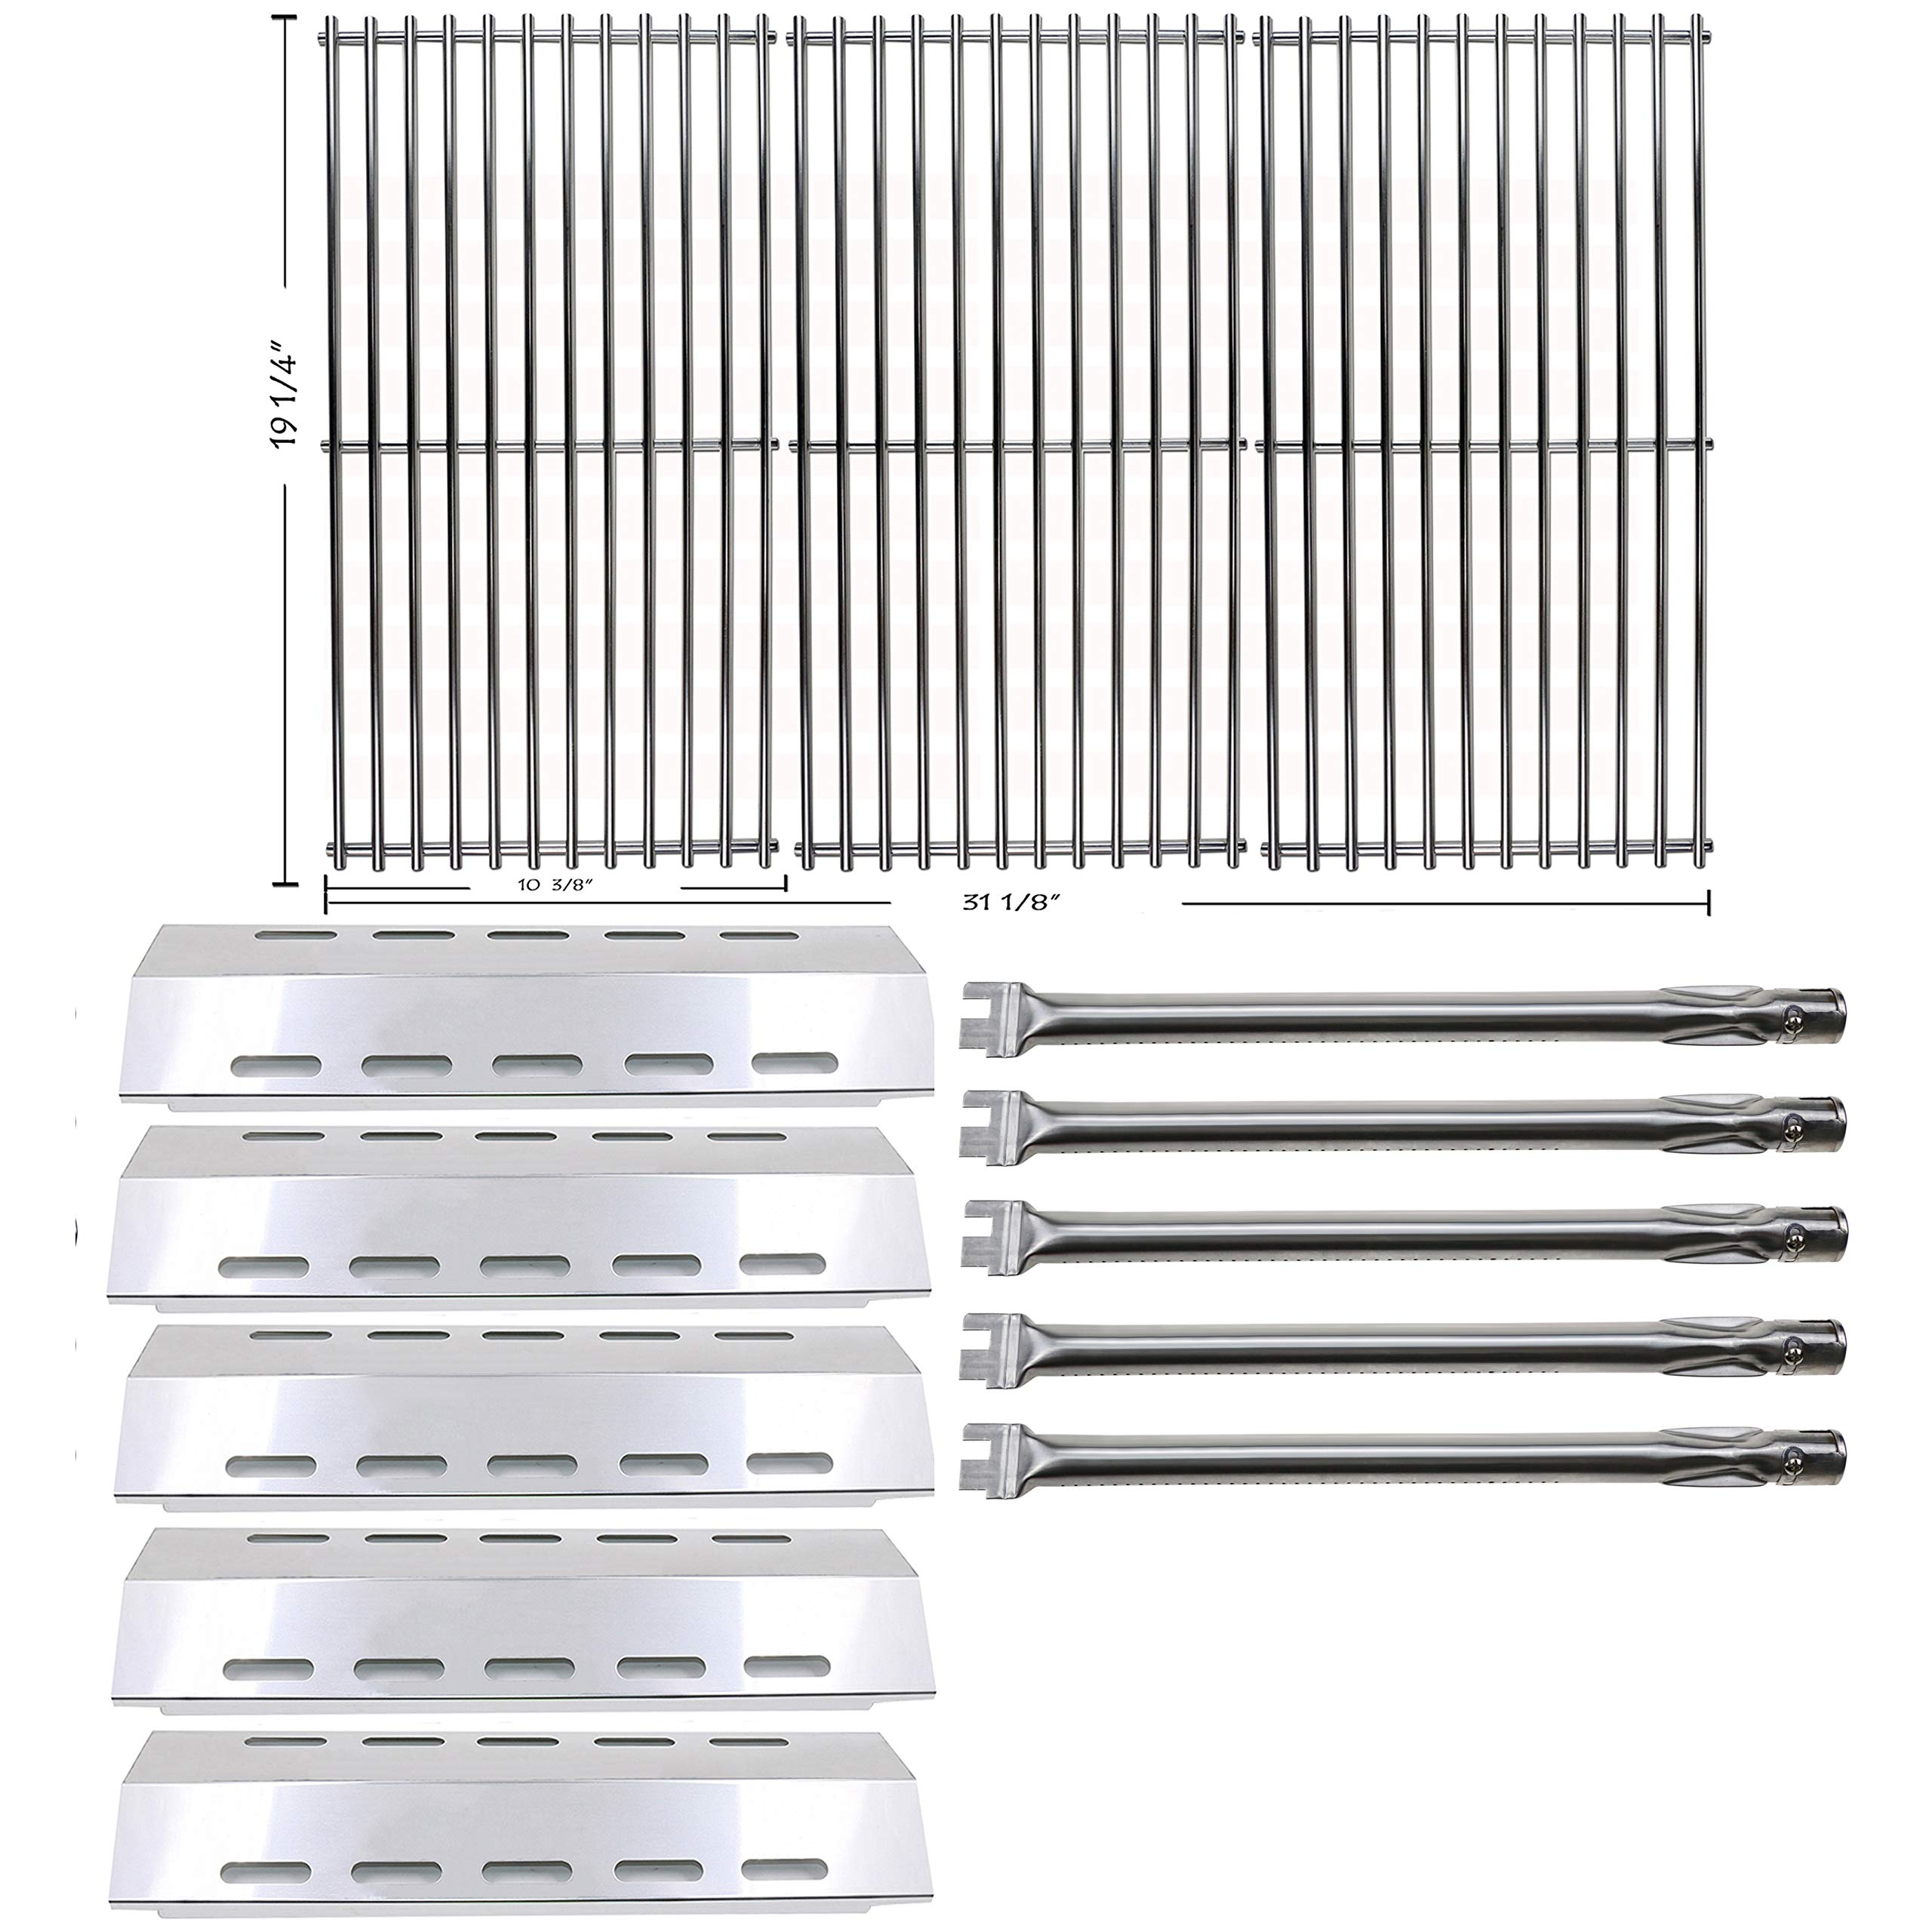 Hisencn Repair kit Replacement for Ducane 30400042,30400043,30558501 Gas Stainless Steel Grill Burner Tupe,Heat Plates Tent Sheild,Cooking Grid Grates